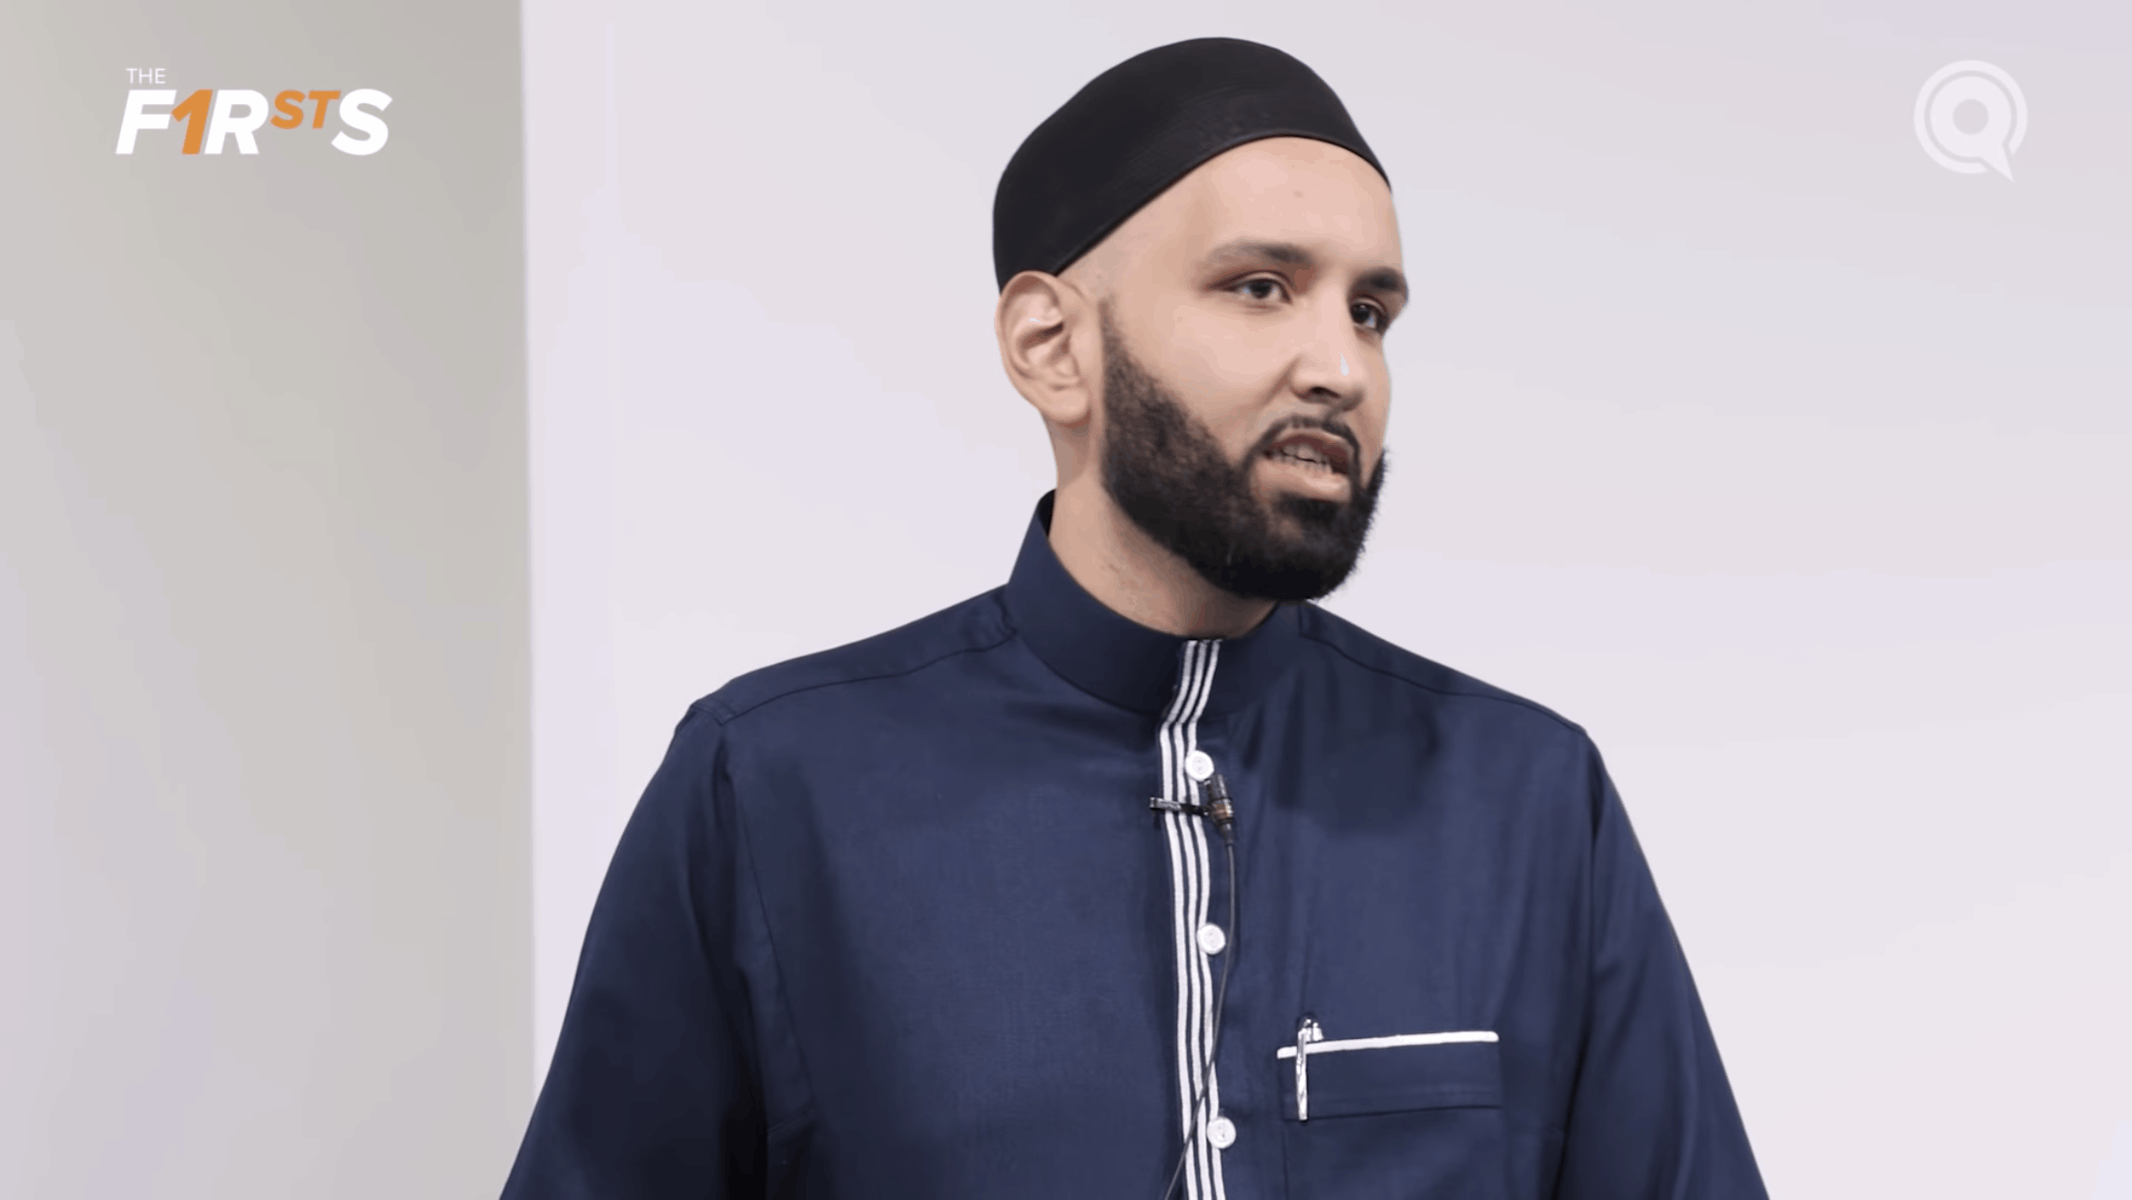 Omar Suleiman – The Firsts (Episode 1): Trendsetters, Revivers, and Strangers